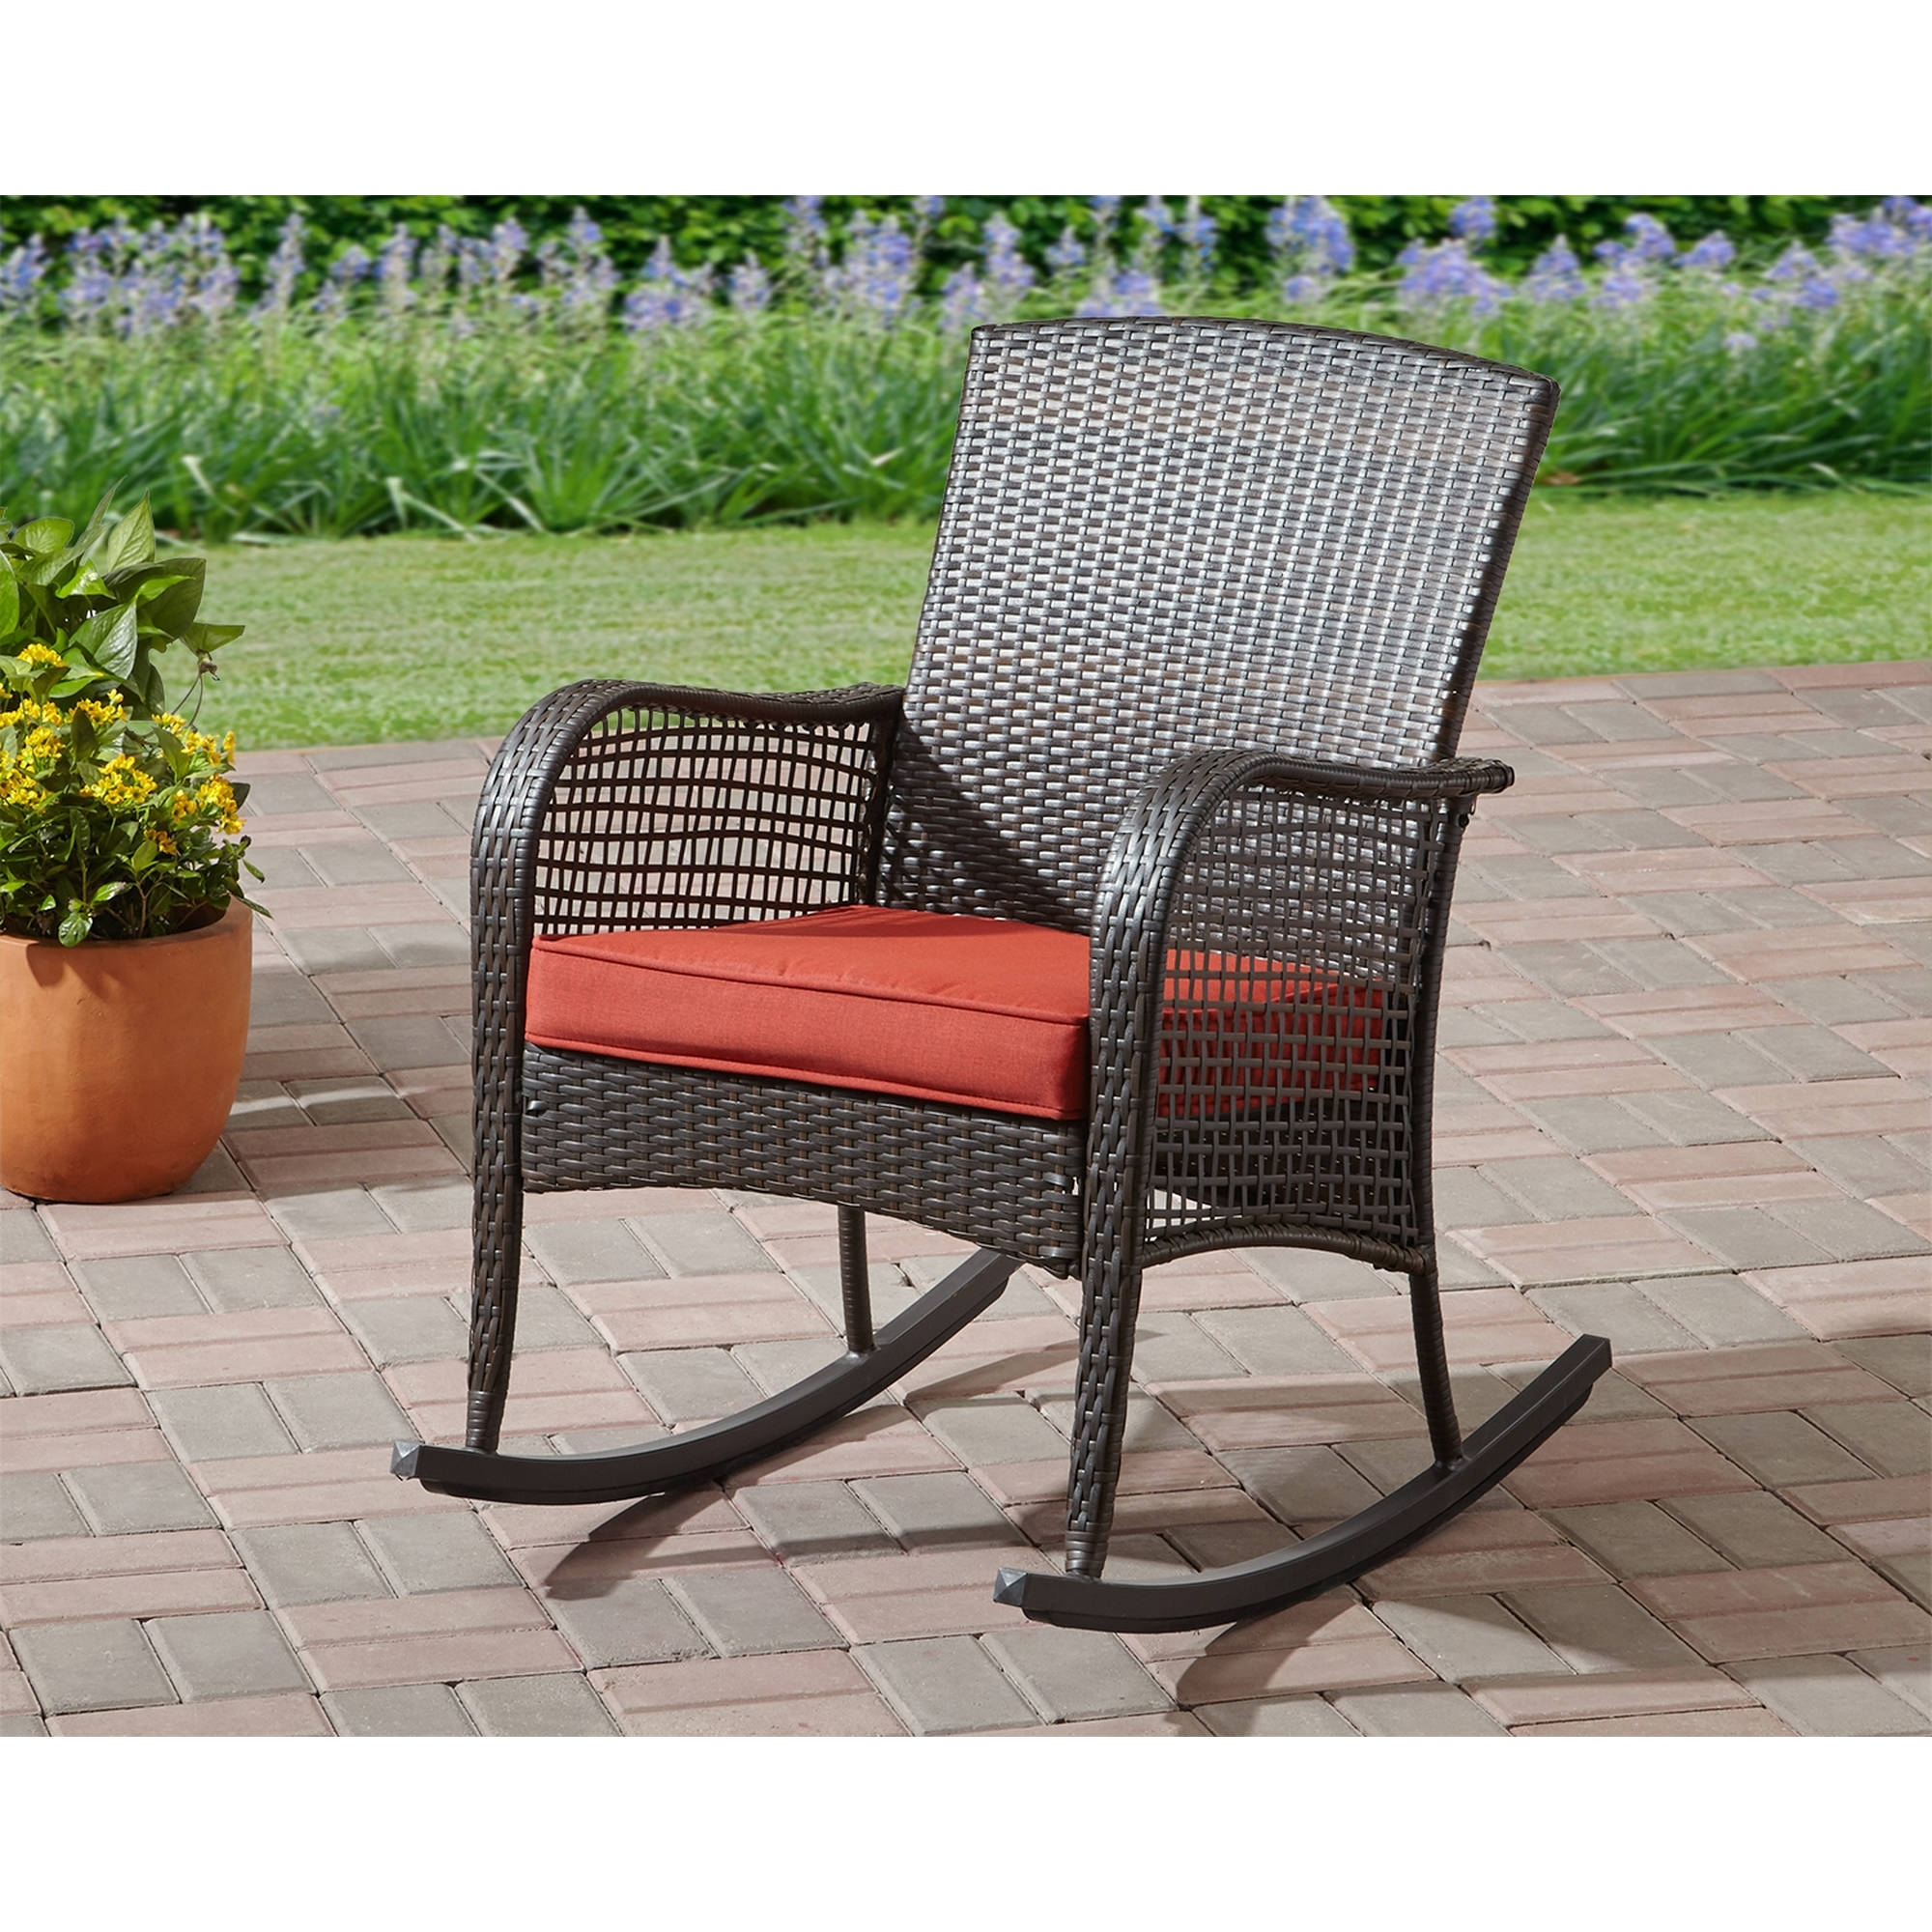 Mainstays Cambridge Park Wicker Outdoor Rocking Chair – Walmart Intended For Best And Newest Wicker Rocking Chairs For Outdoors (View 14 of 15)